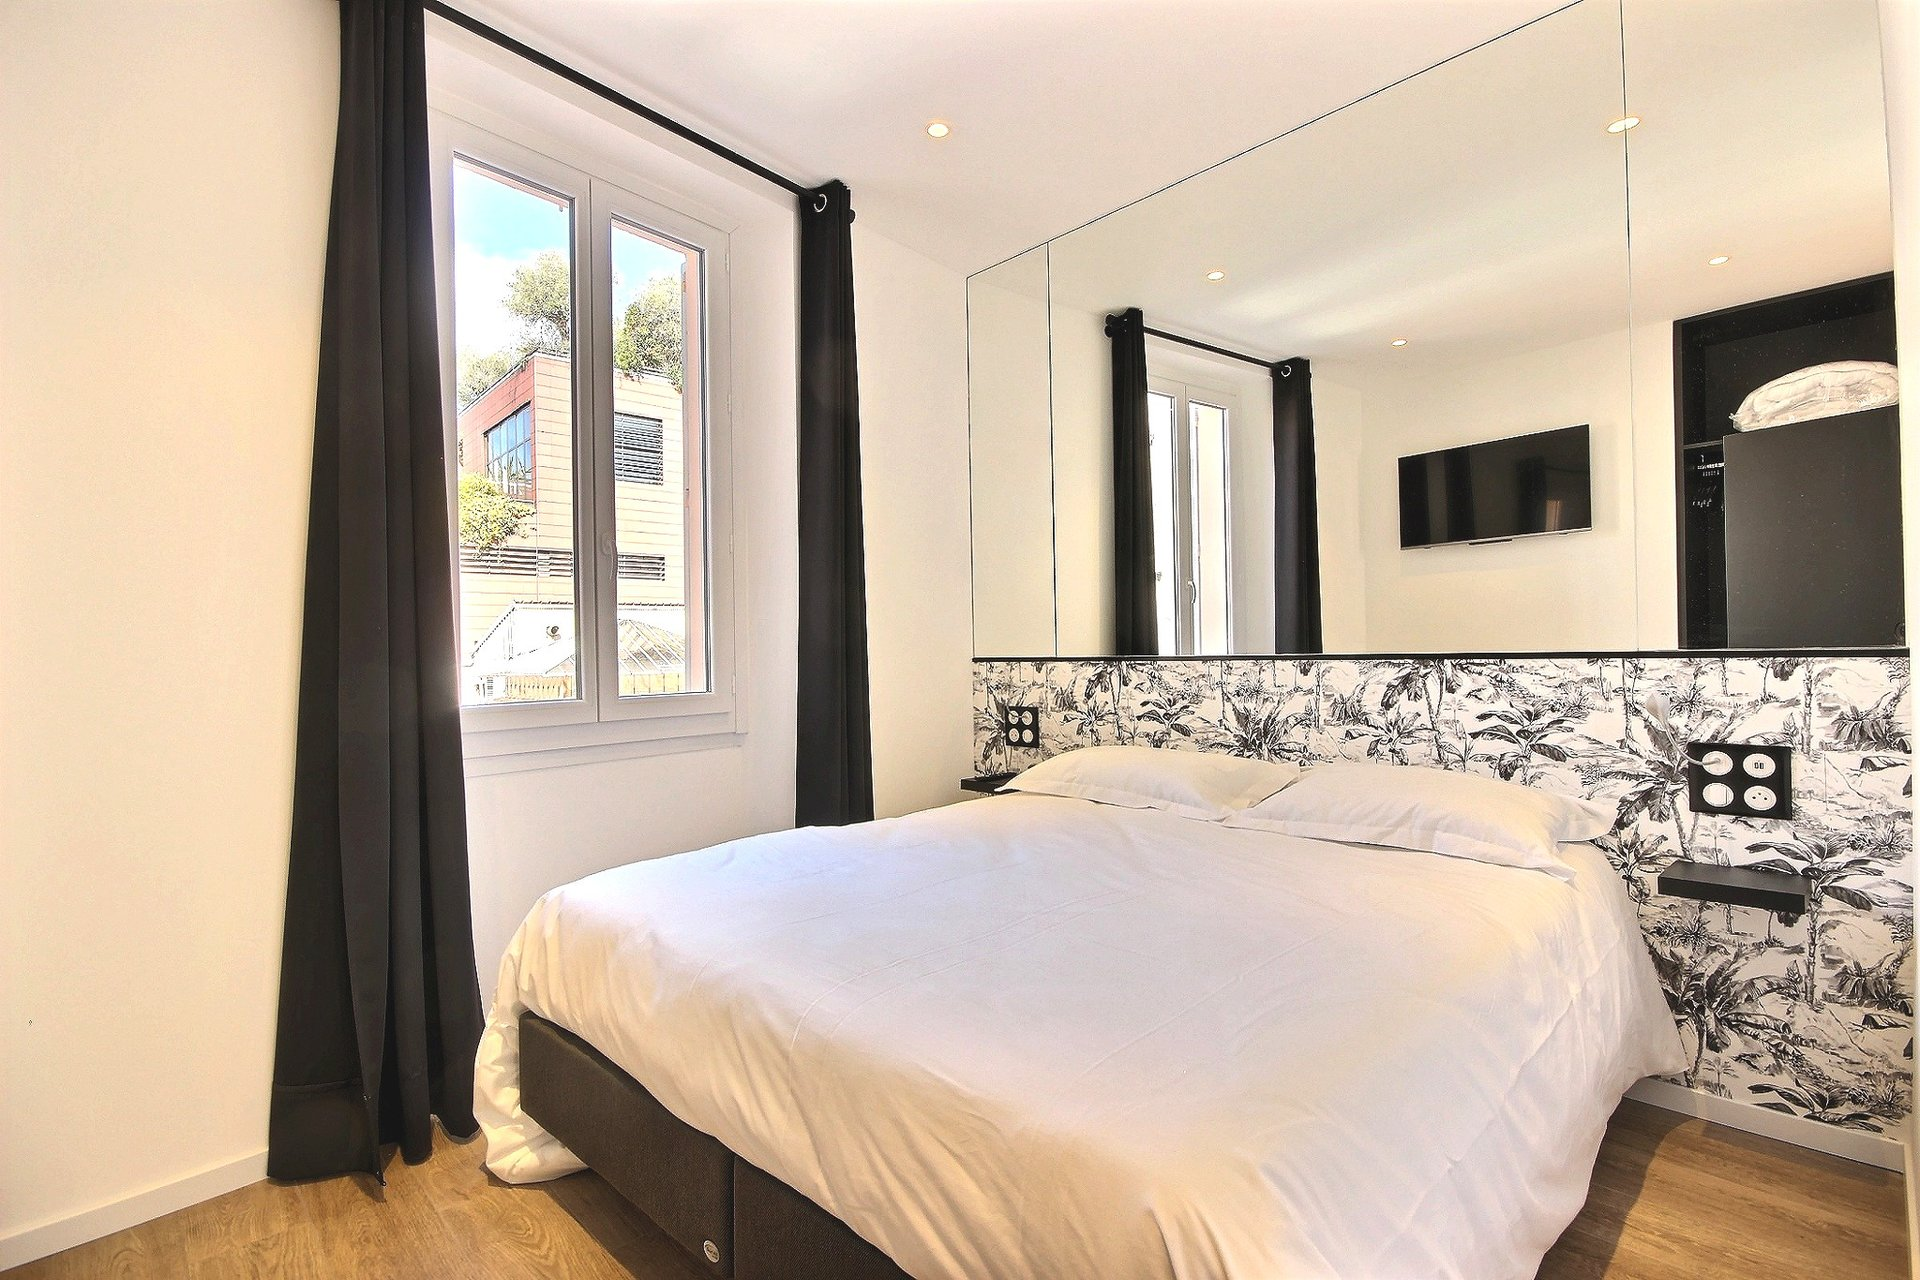 Property for sale in the Banane area of Cannes